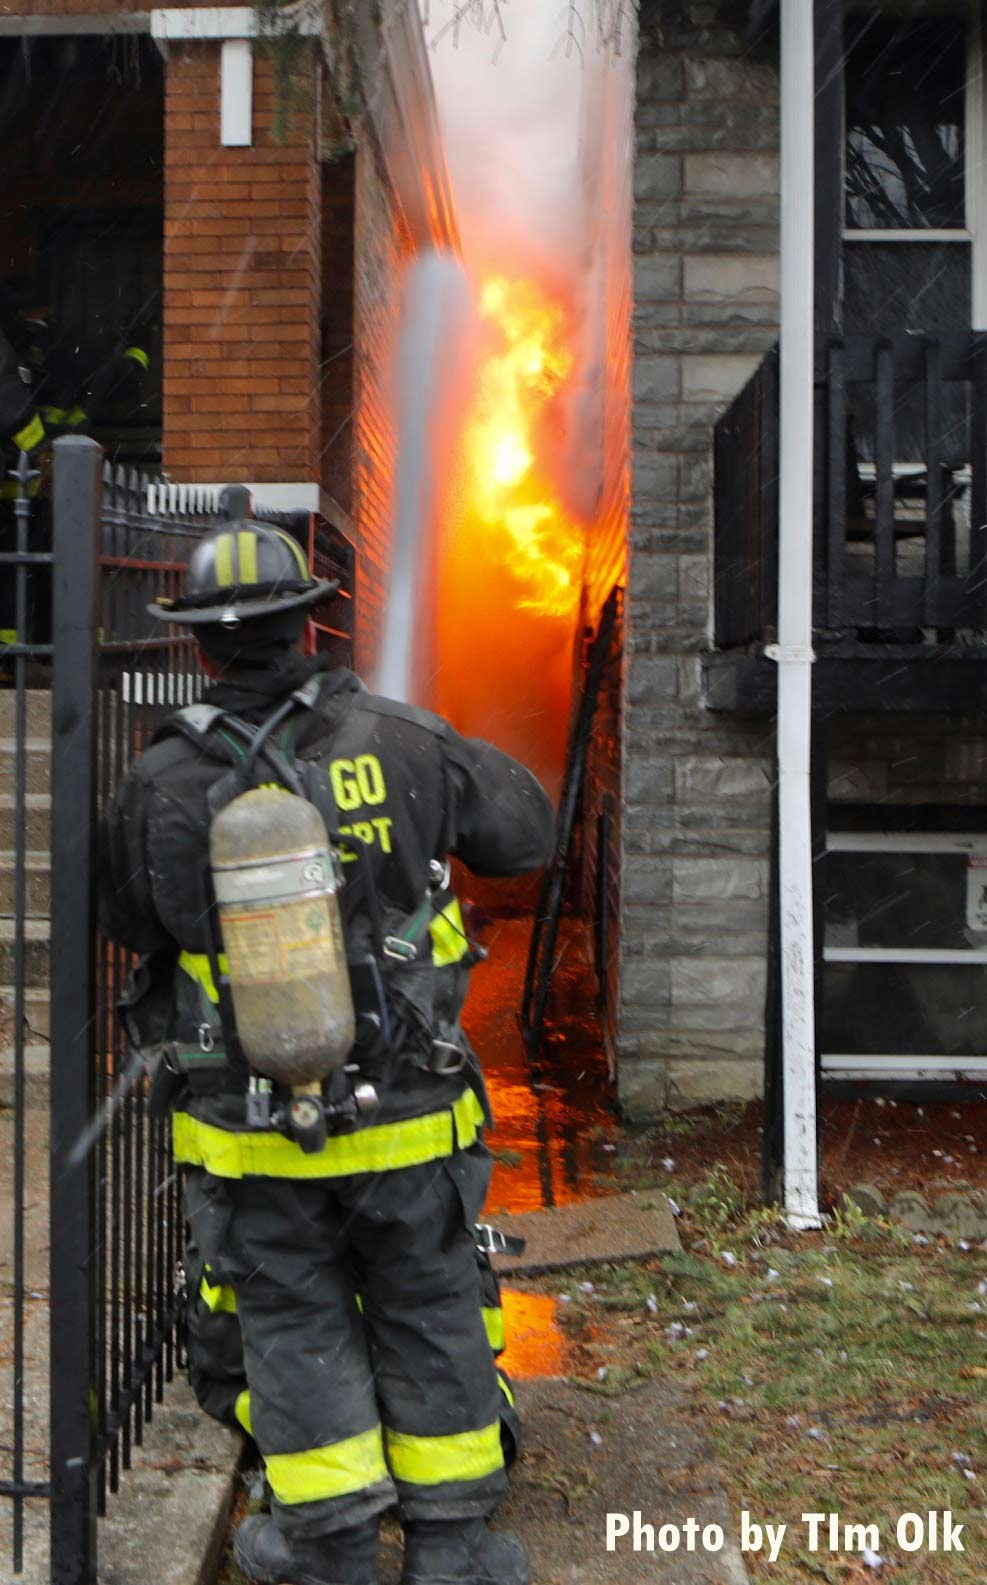 A firefighter uses a hose stream to limit fire spread to an exposure building